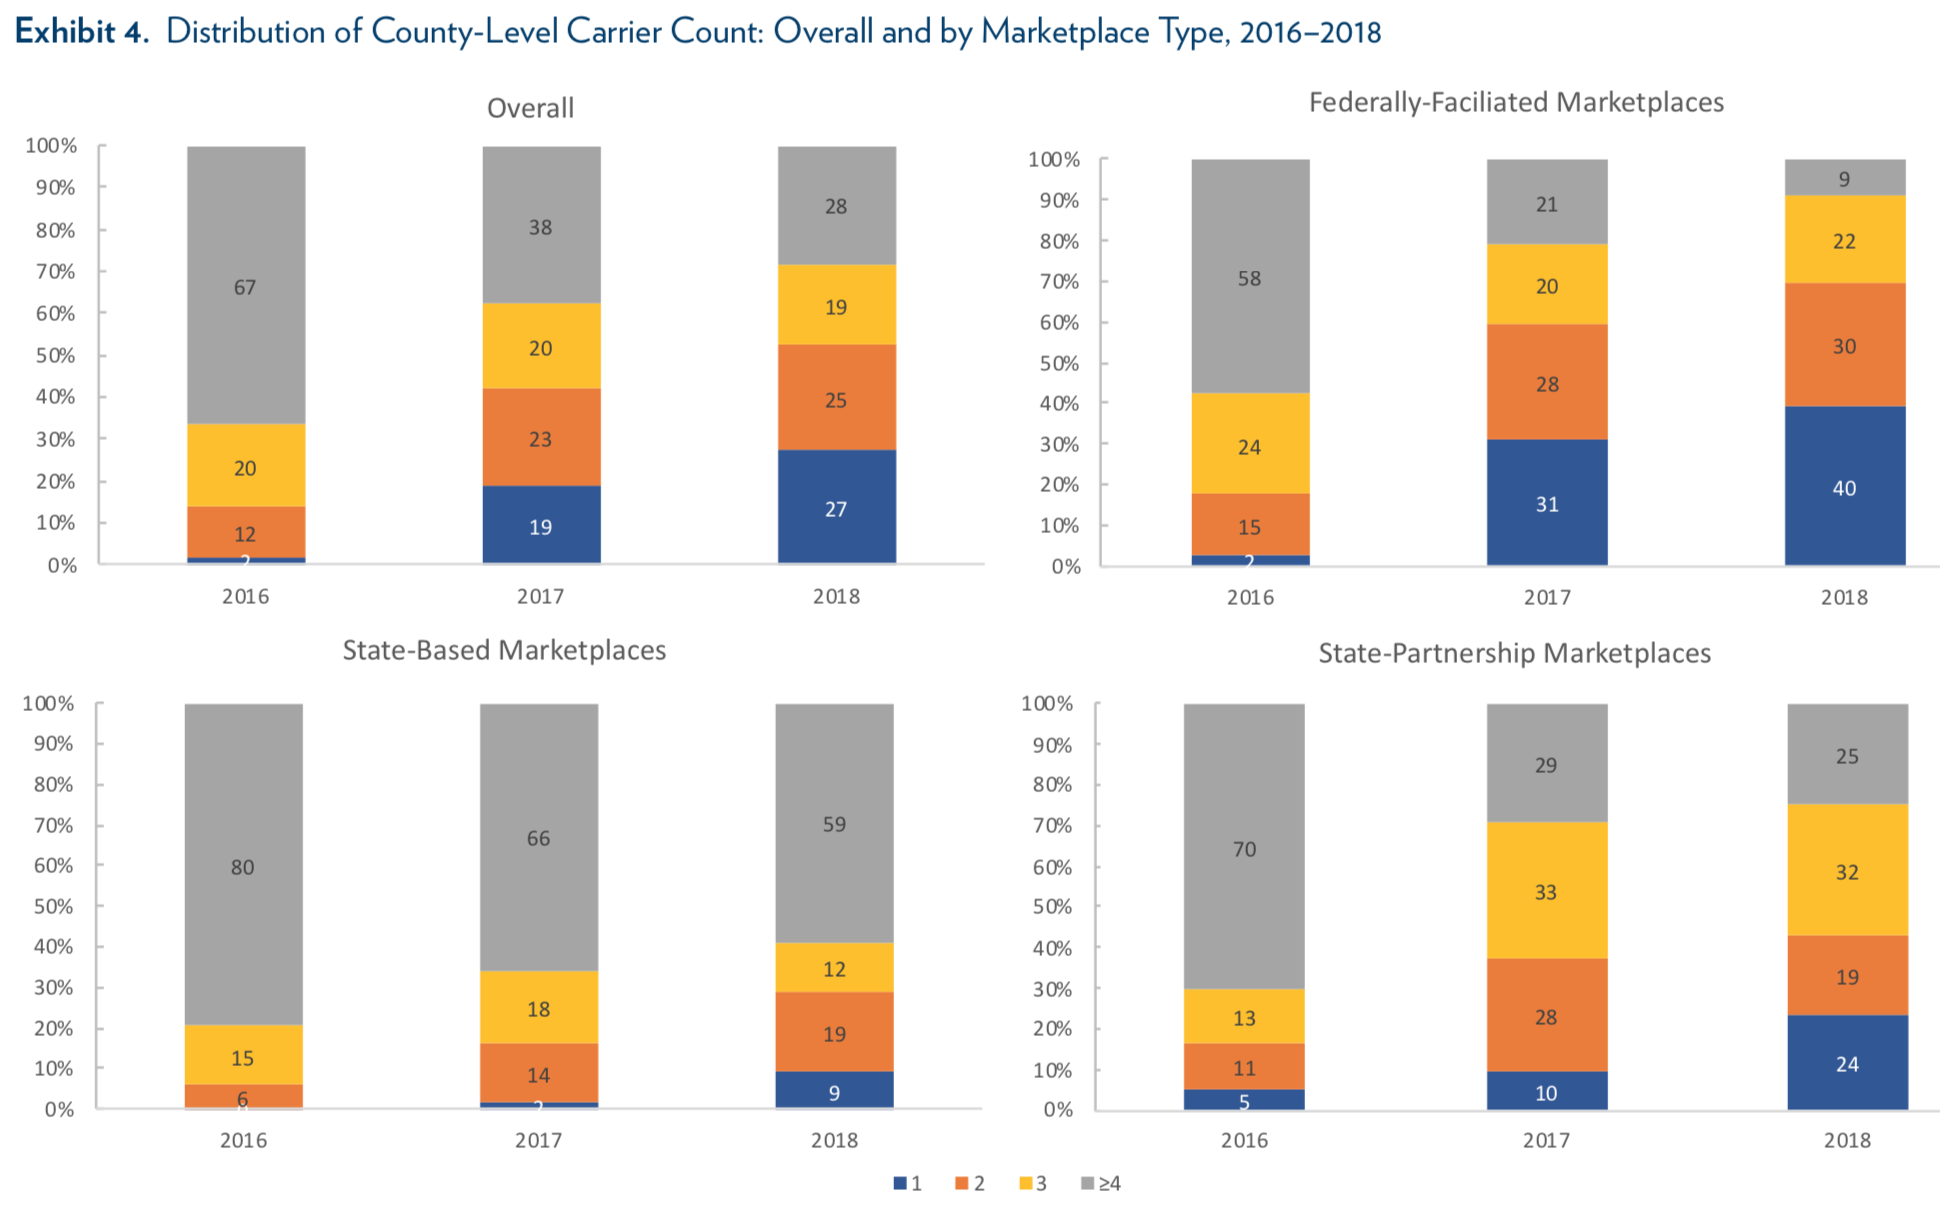 State-Based Marketplaces Outperform Federally-Facilitated